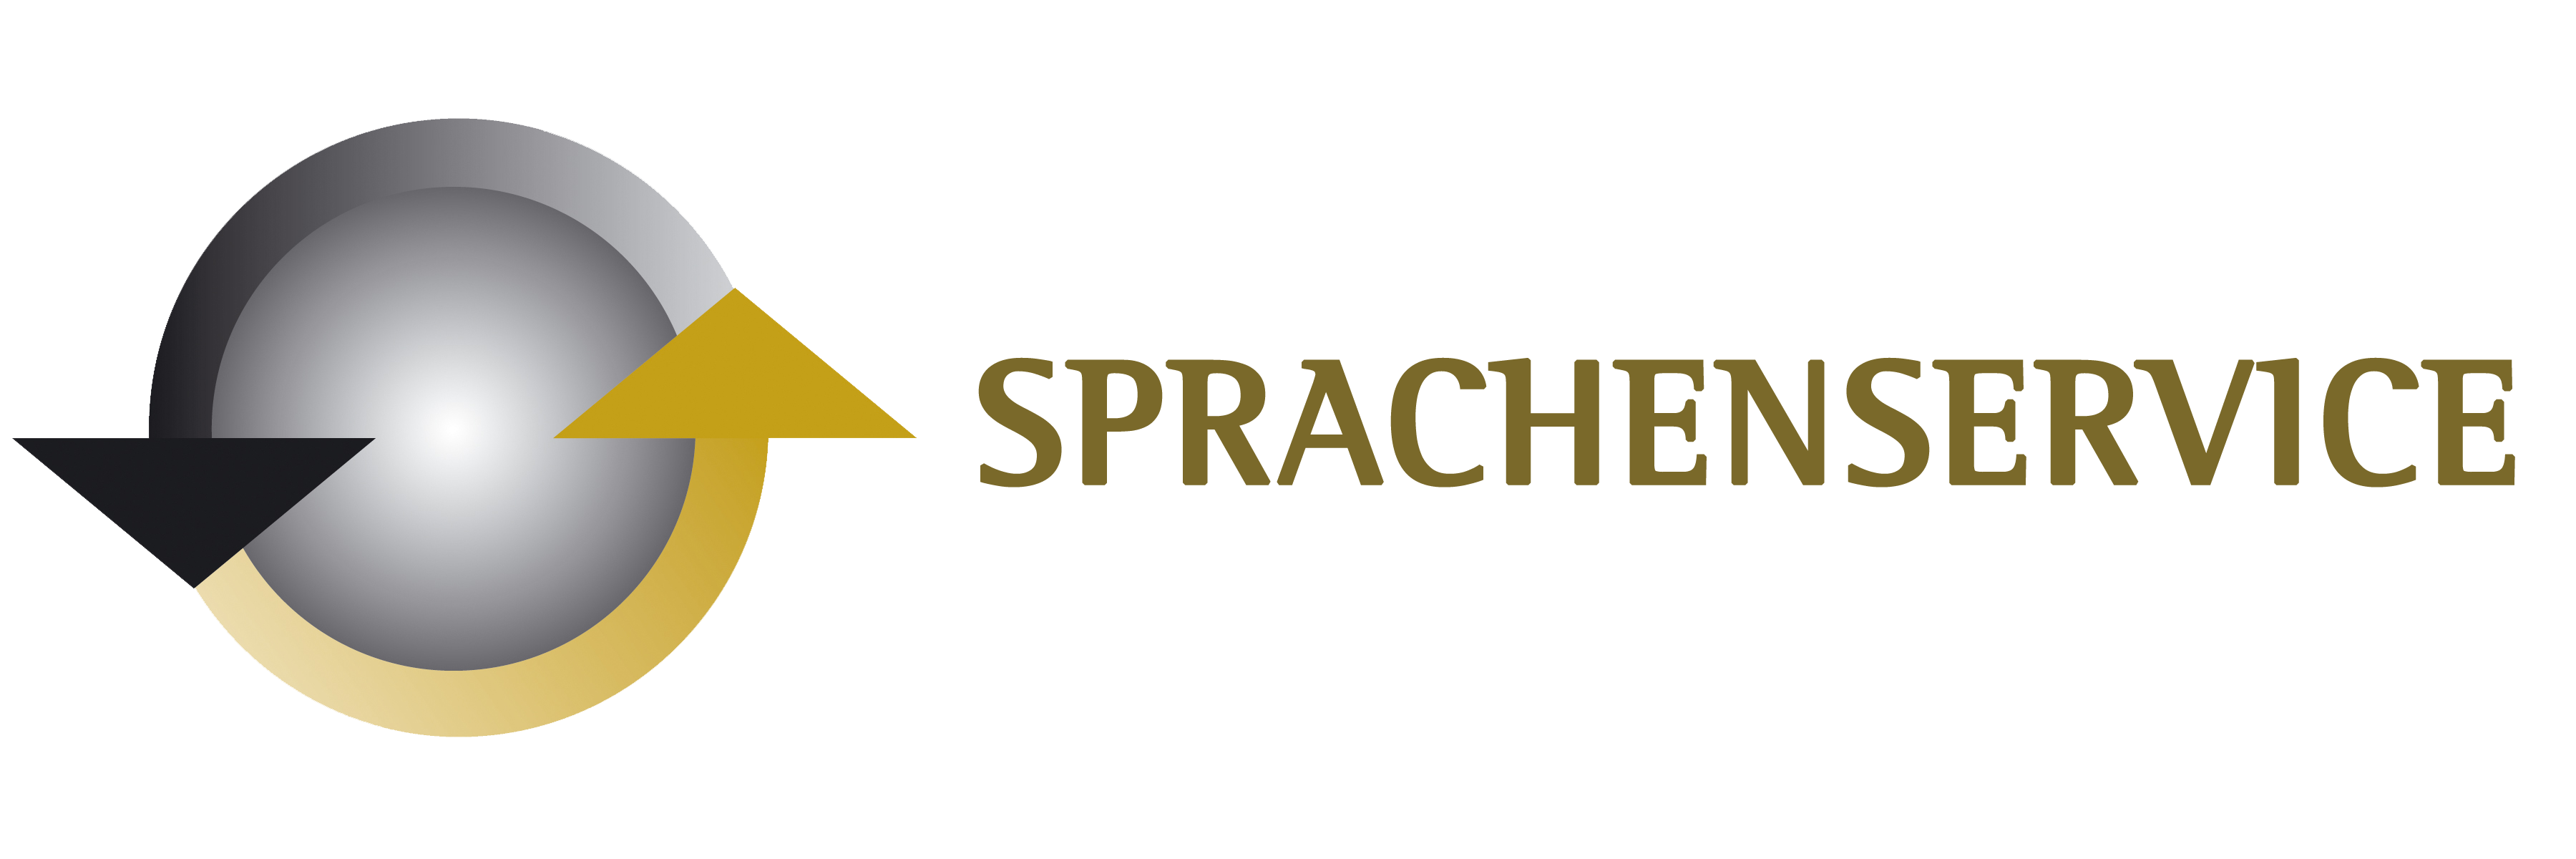 Internationaler Sprachenservice